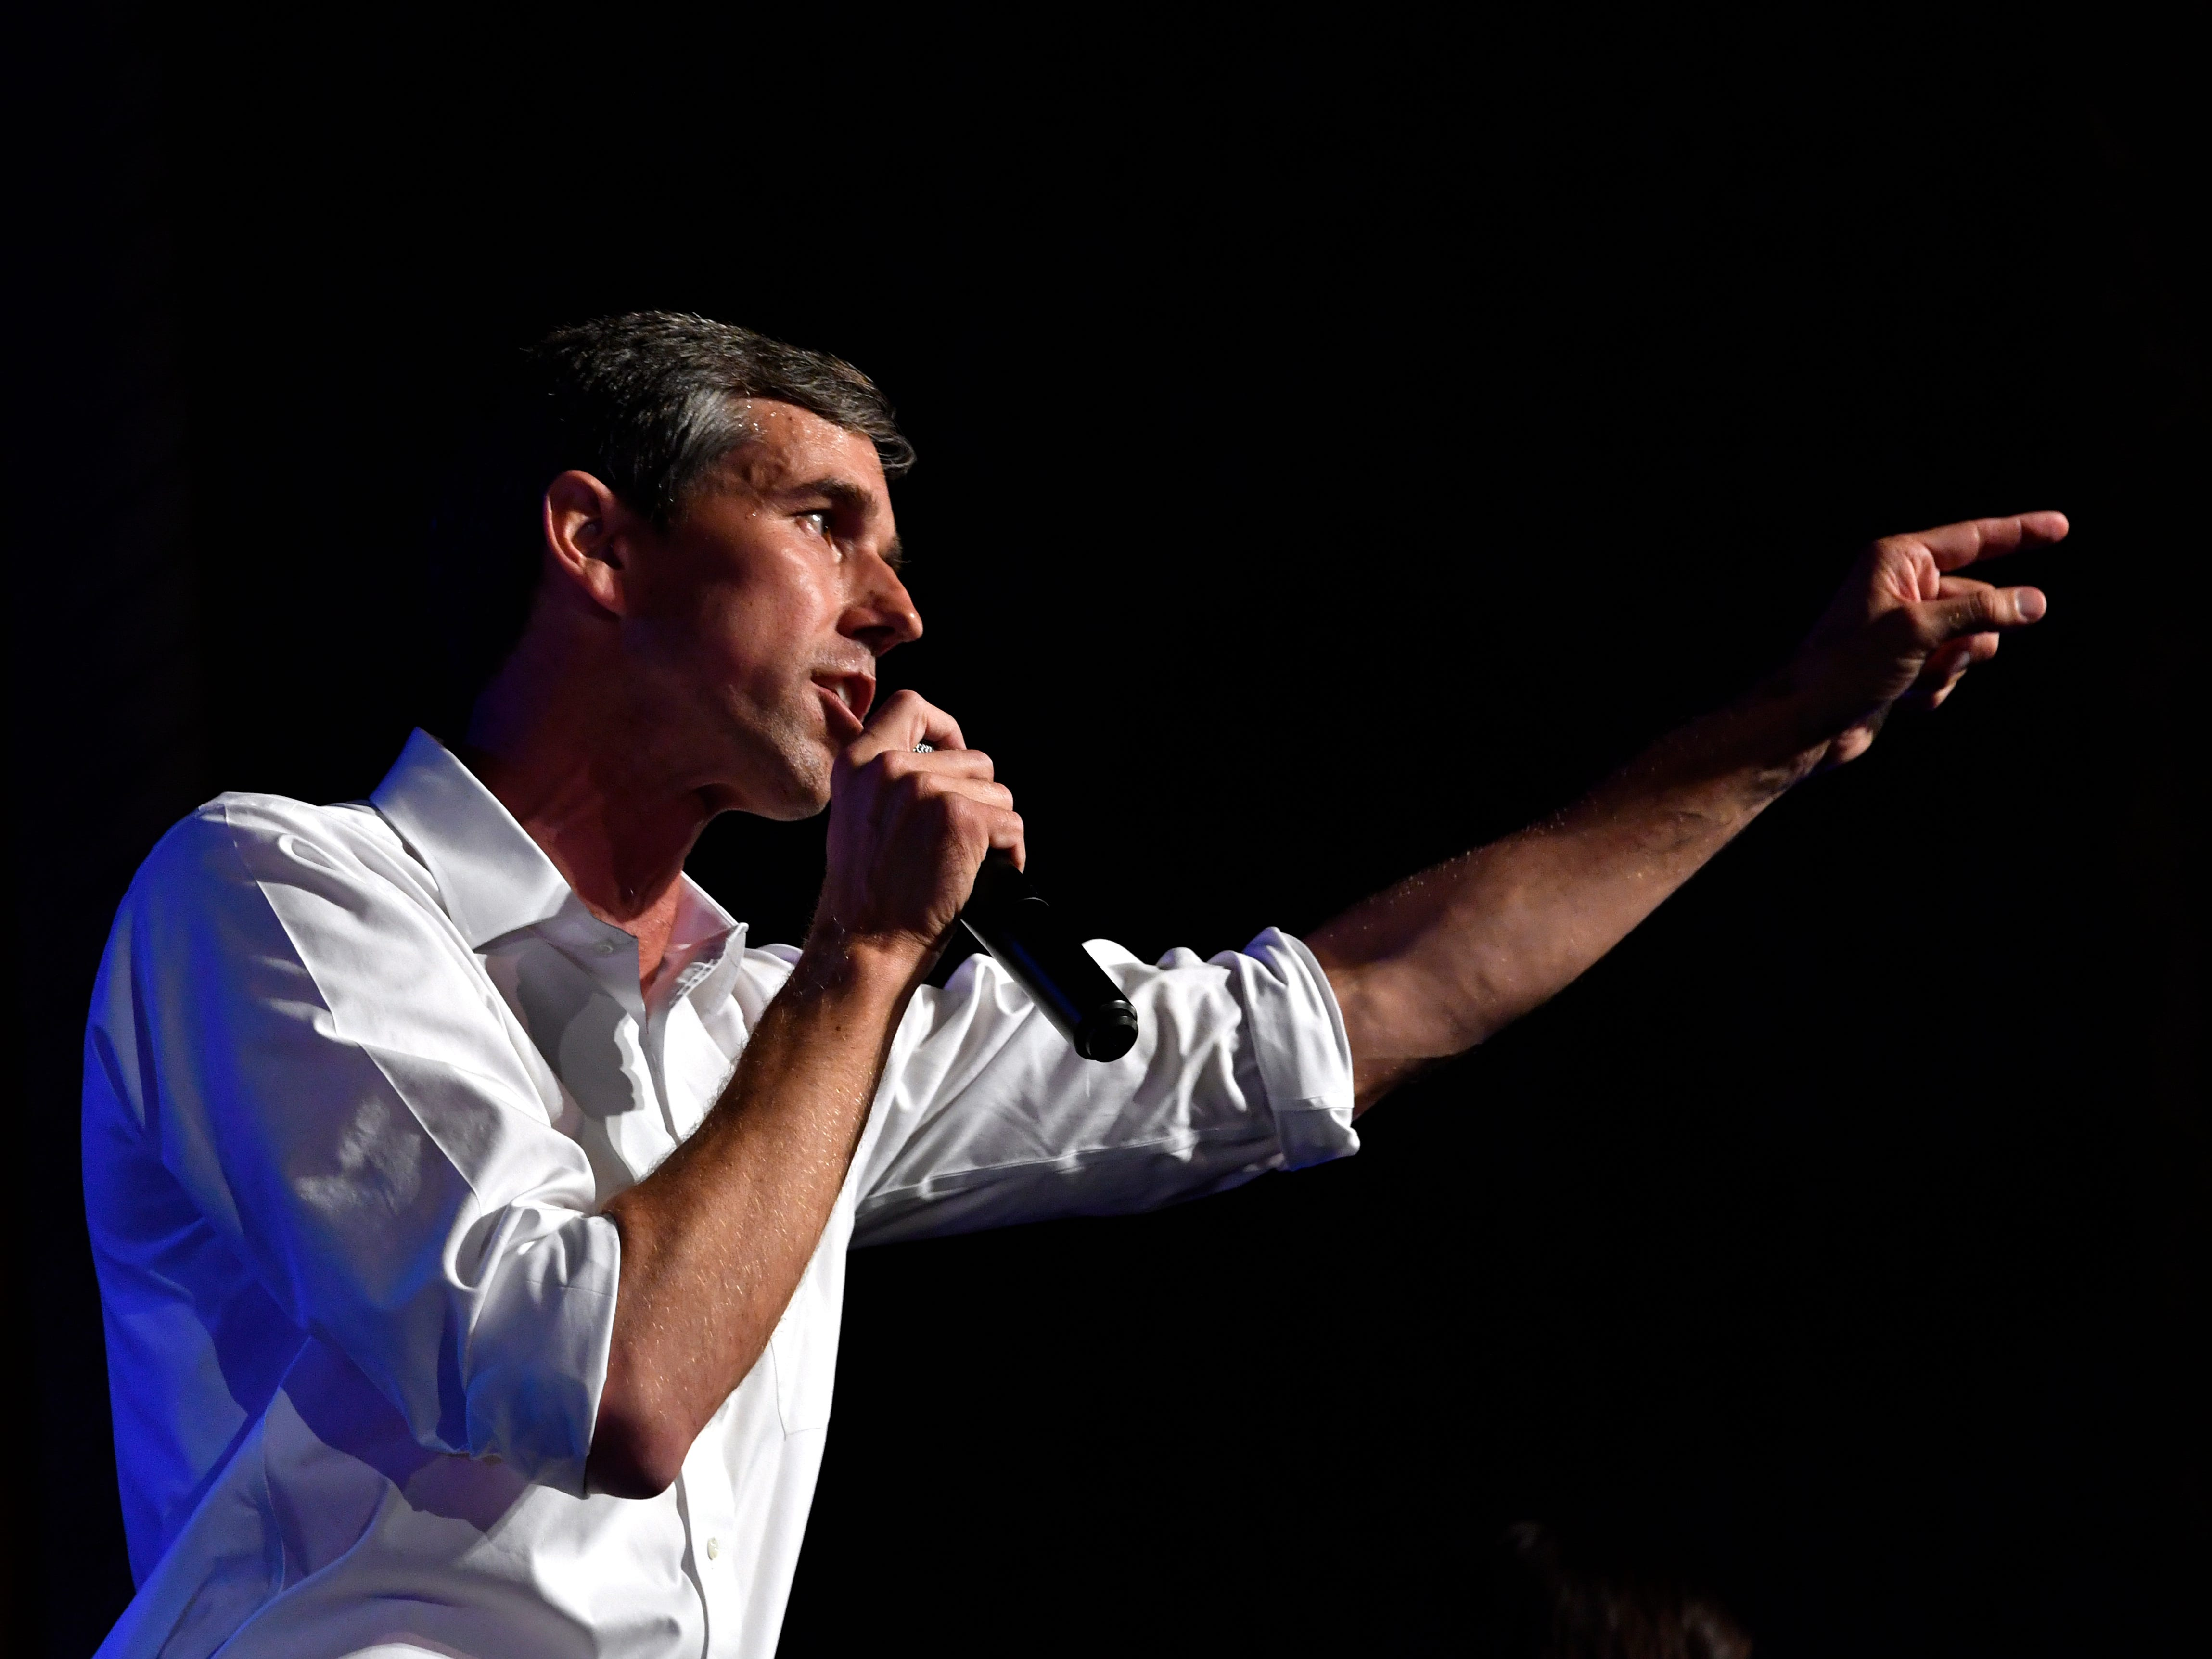 U.S. Senate candidate Beto O'Rourke speaks during a town hall meeting at the Paramount Theatre Thursday August 2, 2018. Five Democratic candidates spoke to a crowd of nearly 800 people.